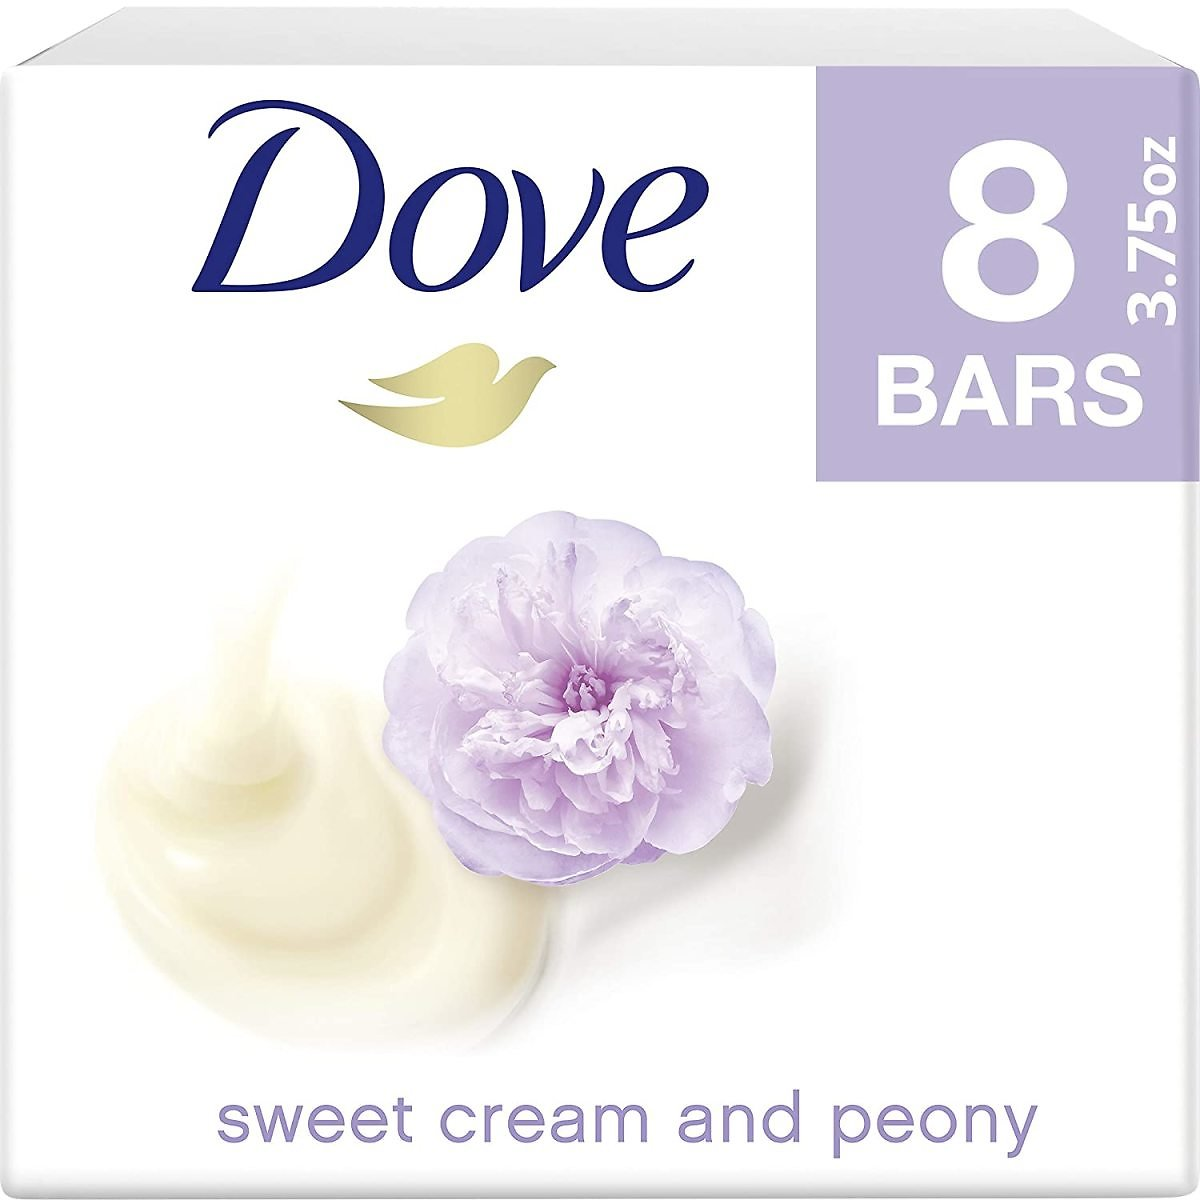 Dove Purely Pampering Beauty Bar Gentle Cleanser for Softer Skin Sweet Cream & Peony More Moisturizing Than Bar Soap 8 Bars